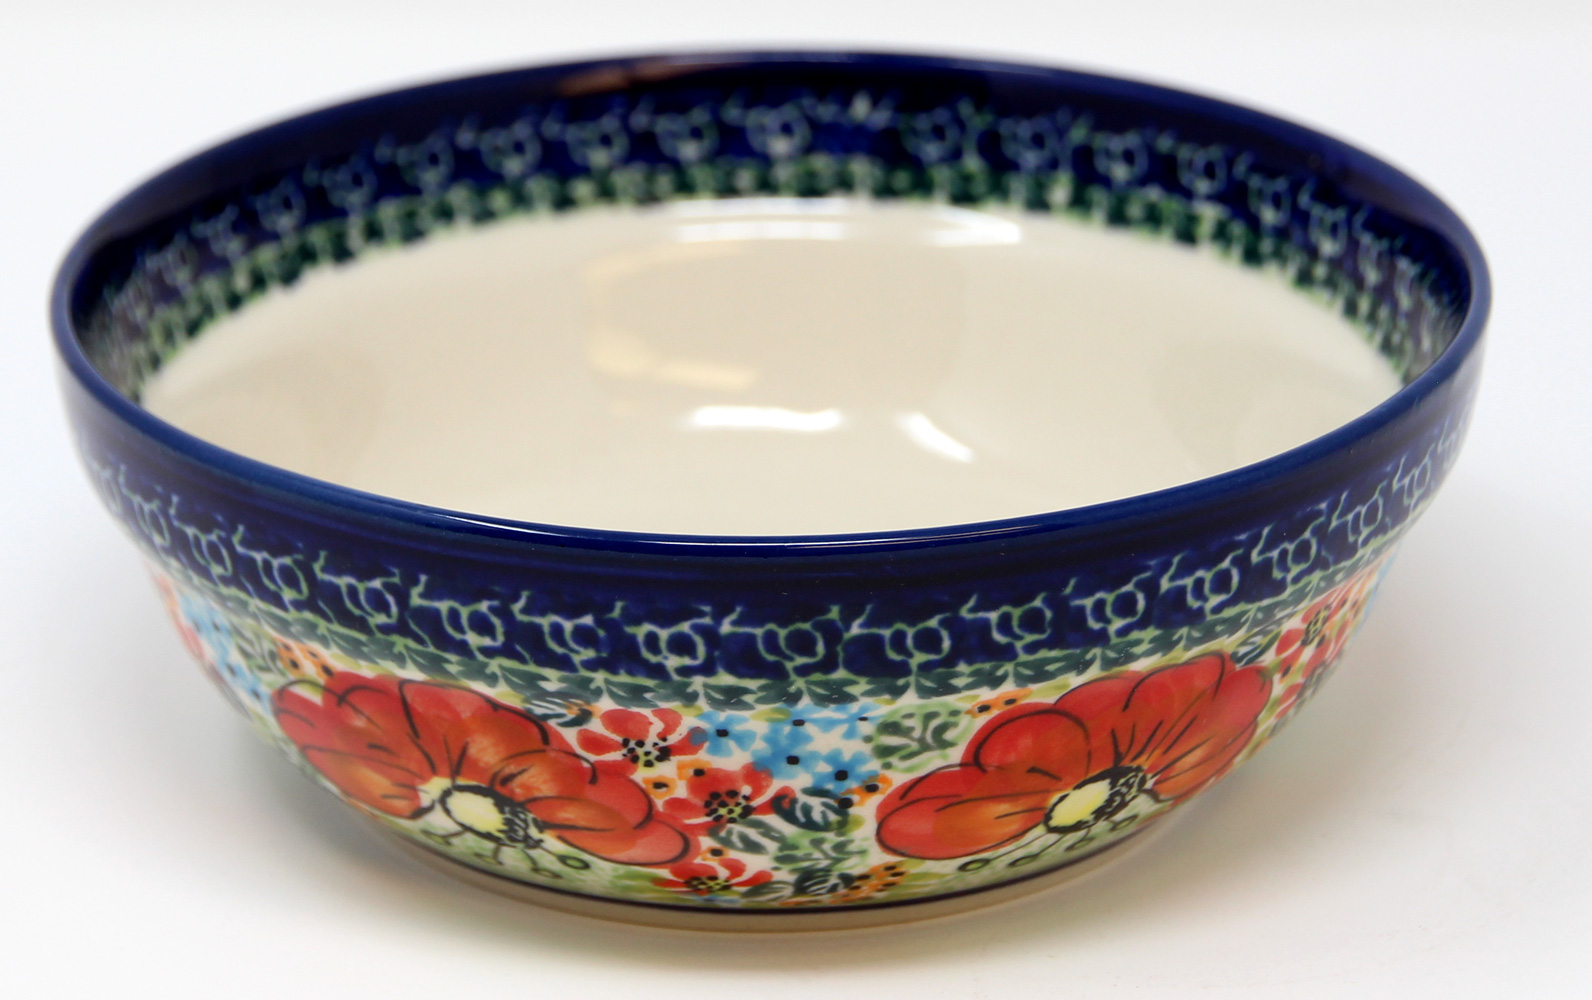 Polish Pottery Cereal / Salad Bowl, Unikat Signature Pattern 296 Art